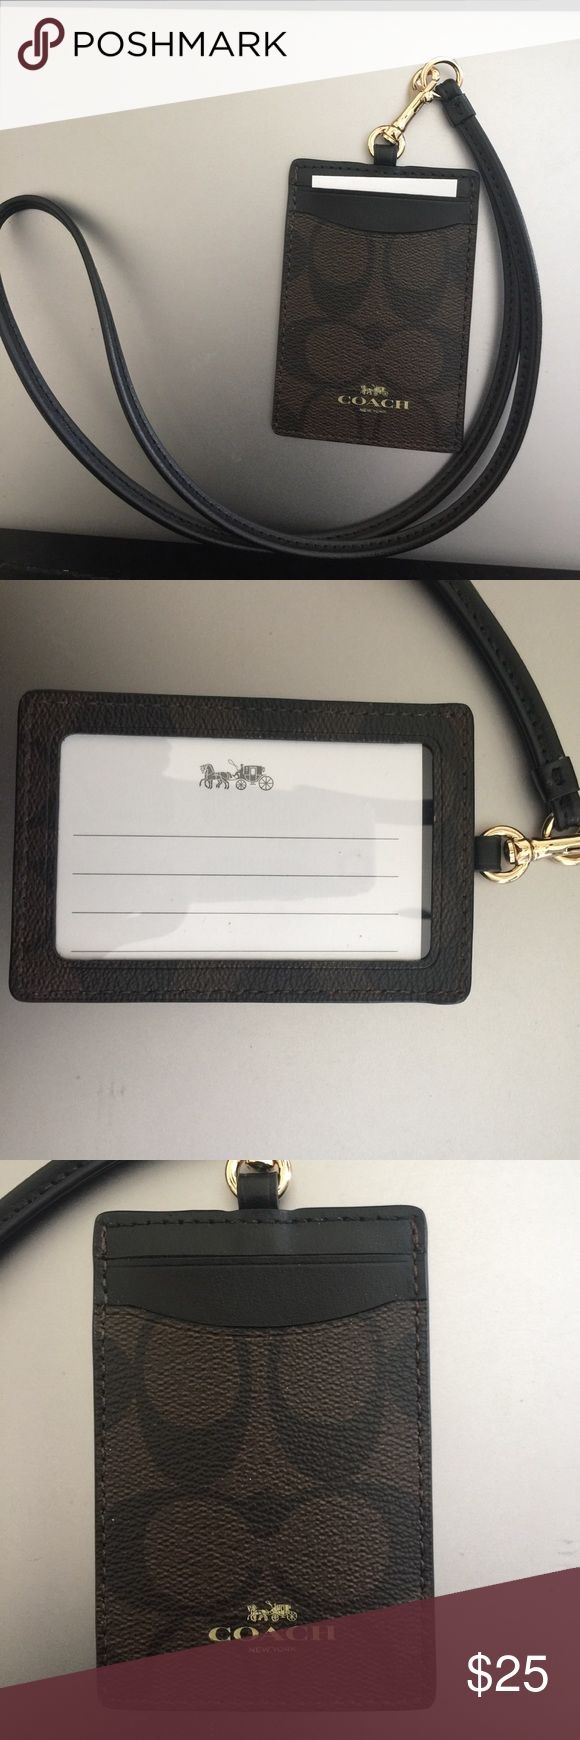 Coach Lanyard Id Holder NWOT Coach signature pvc card/id holder. Color - Brown/Black Coach Accessories Key & Card Holders